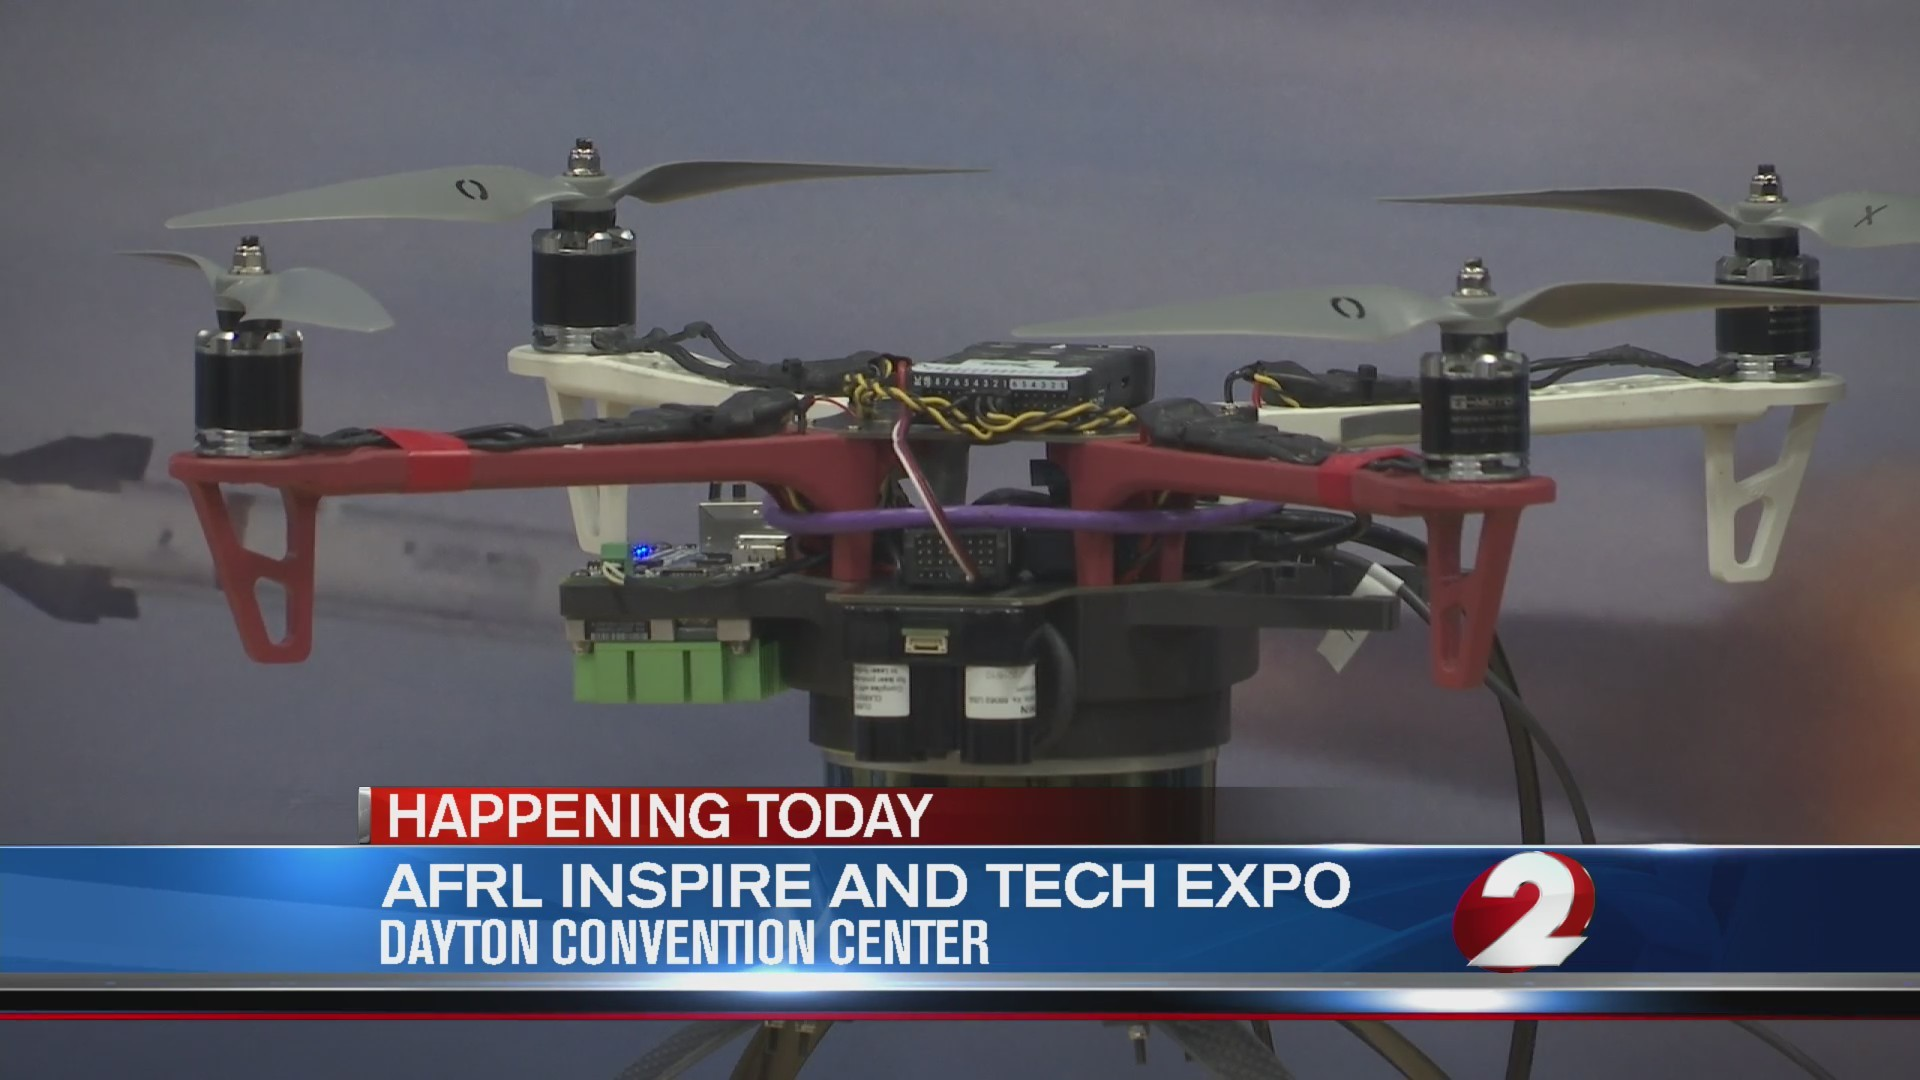 AFRL Inspire and Tech Expo